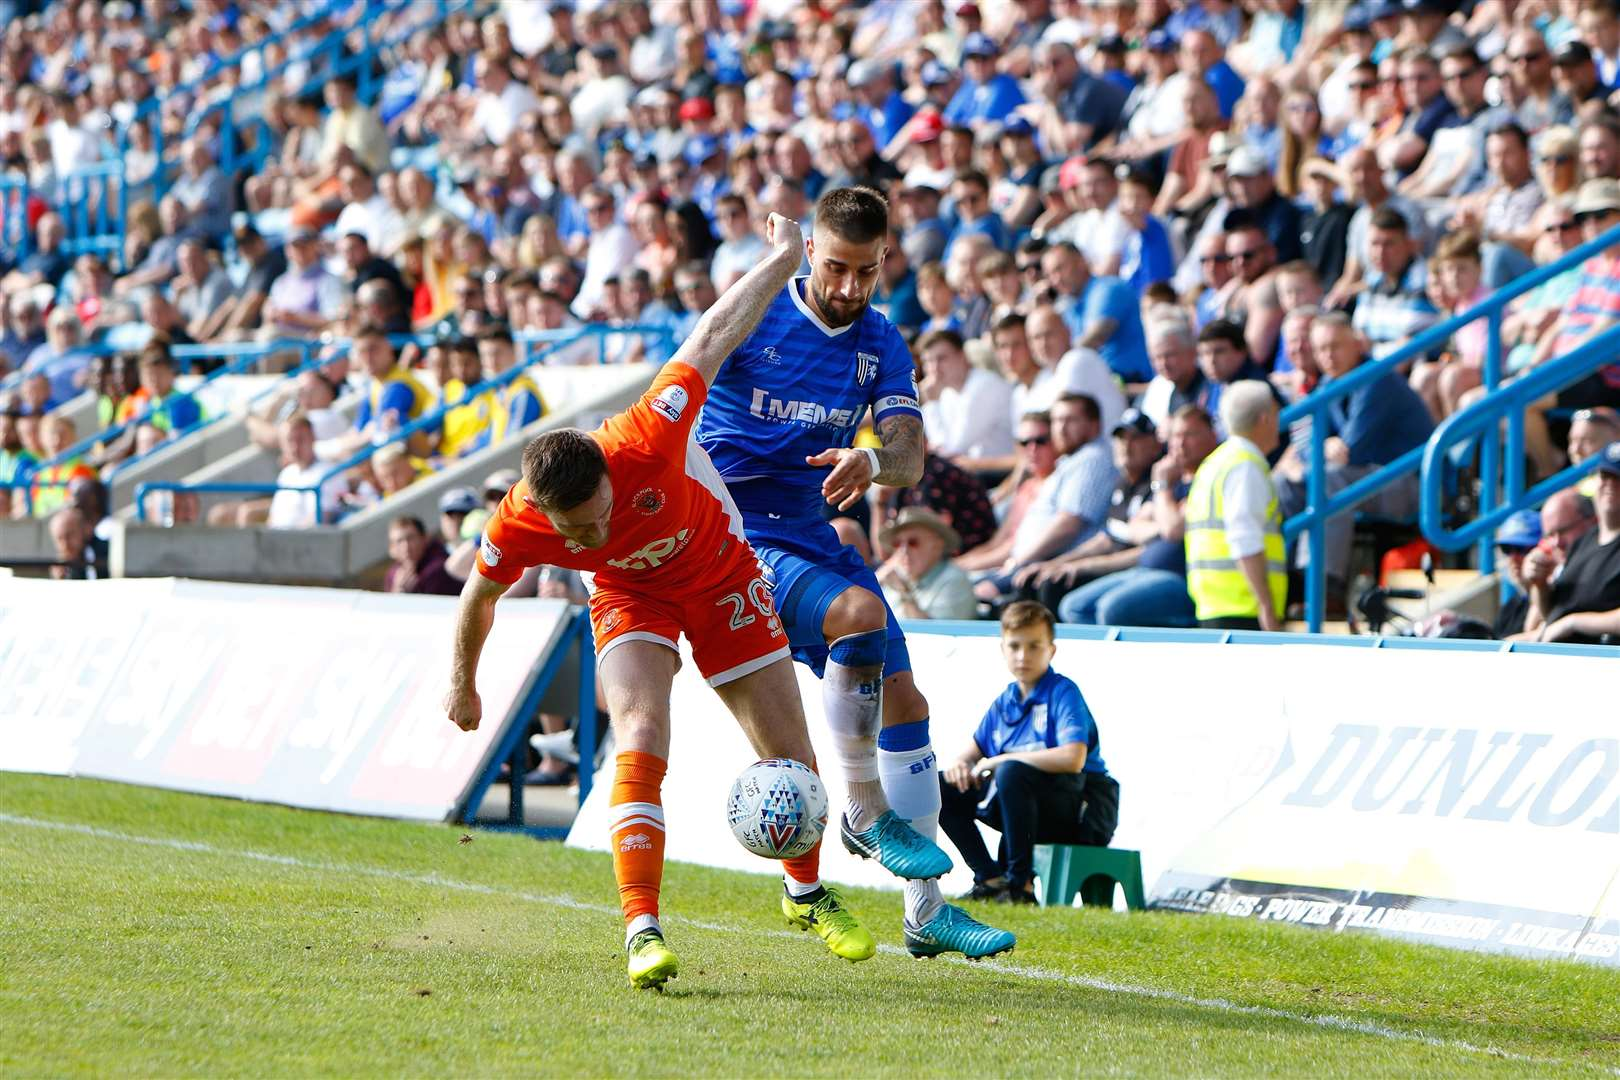 Gillingham defender Max Ehmer challenges Blackpool defender Oliver Turton Picture: Andy Jones